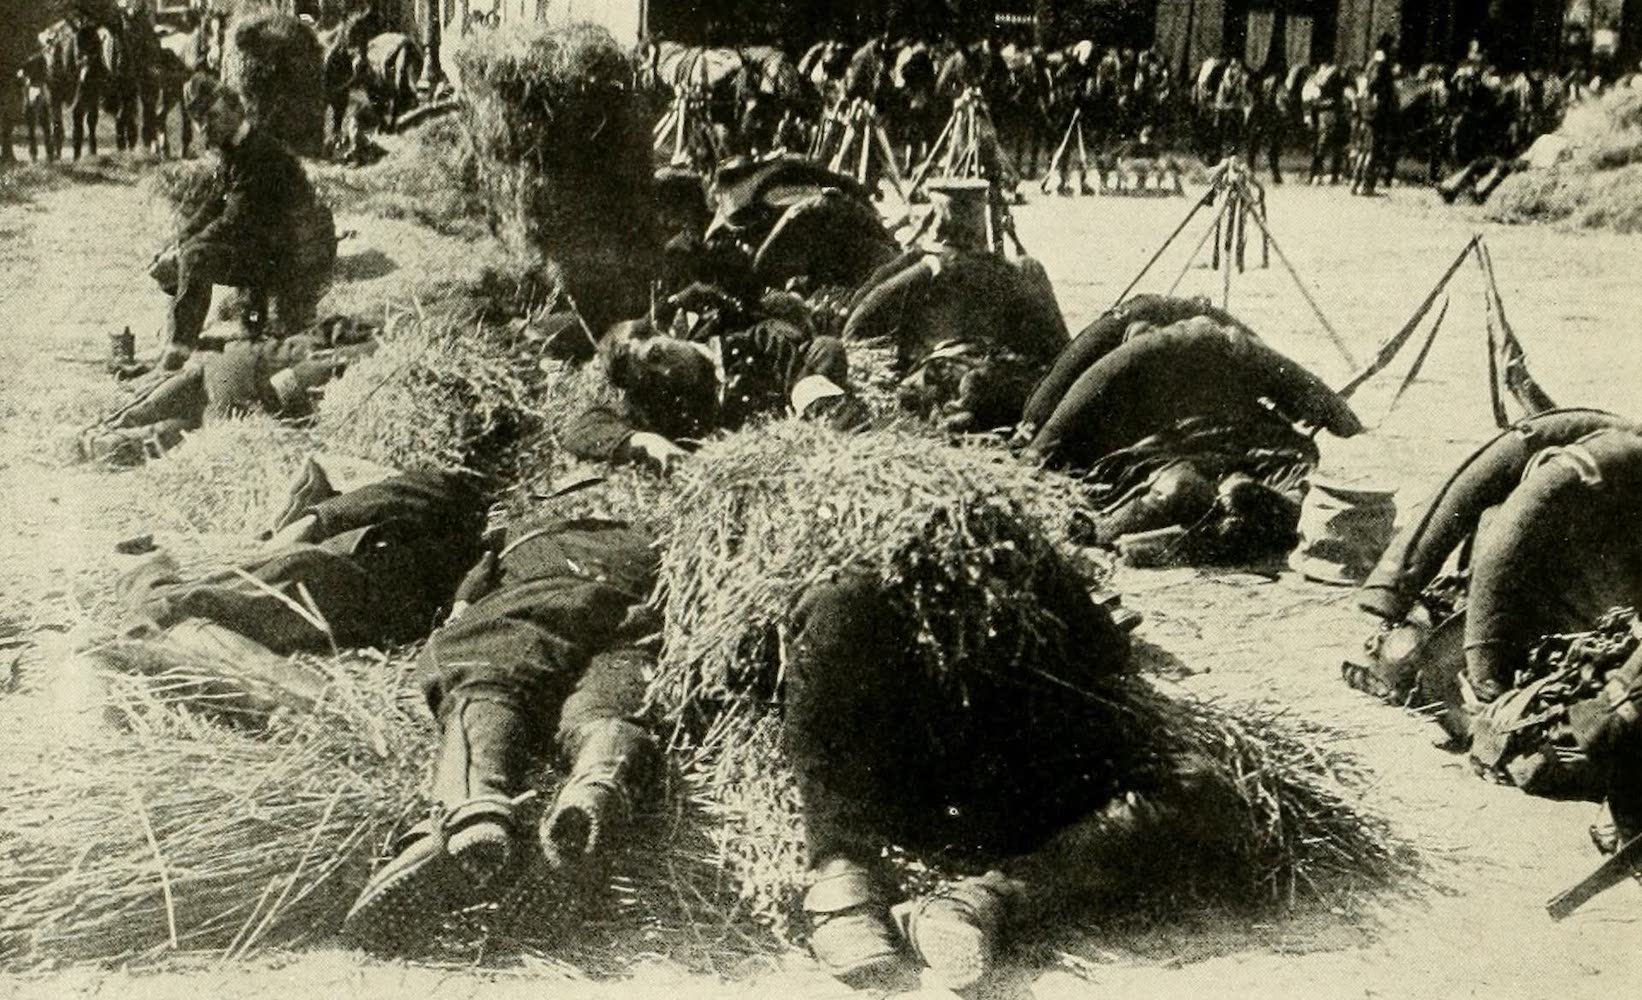 Laird & Lee's World's War Glimpses - French Bivouacked in Streets of Paris (1914)